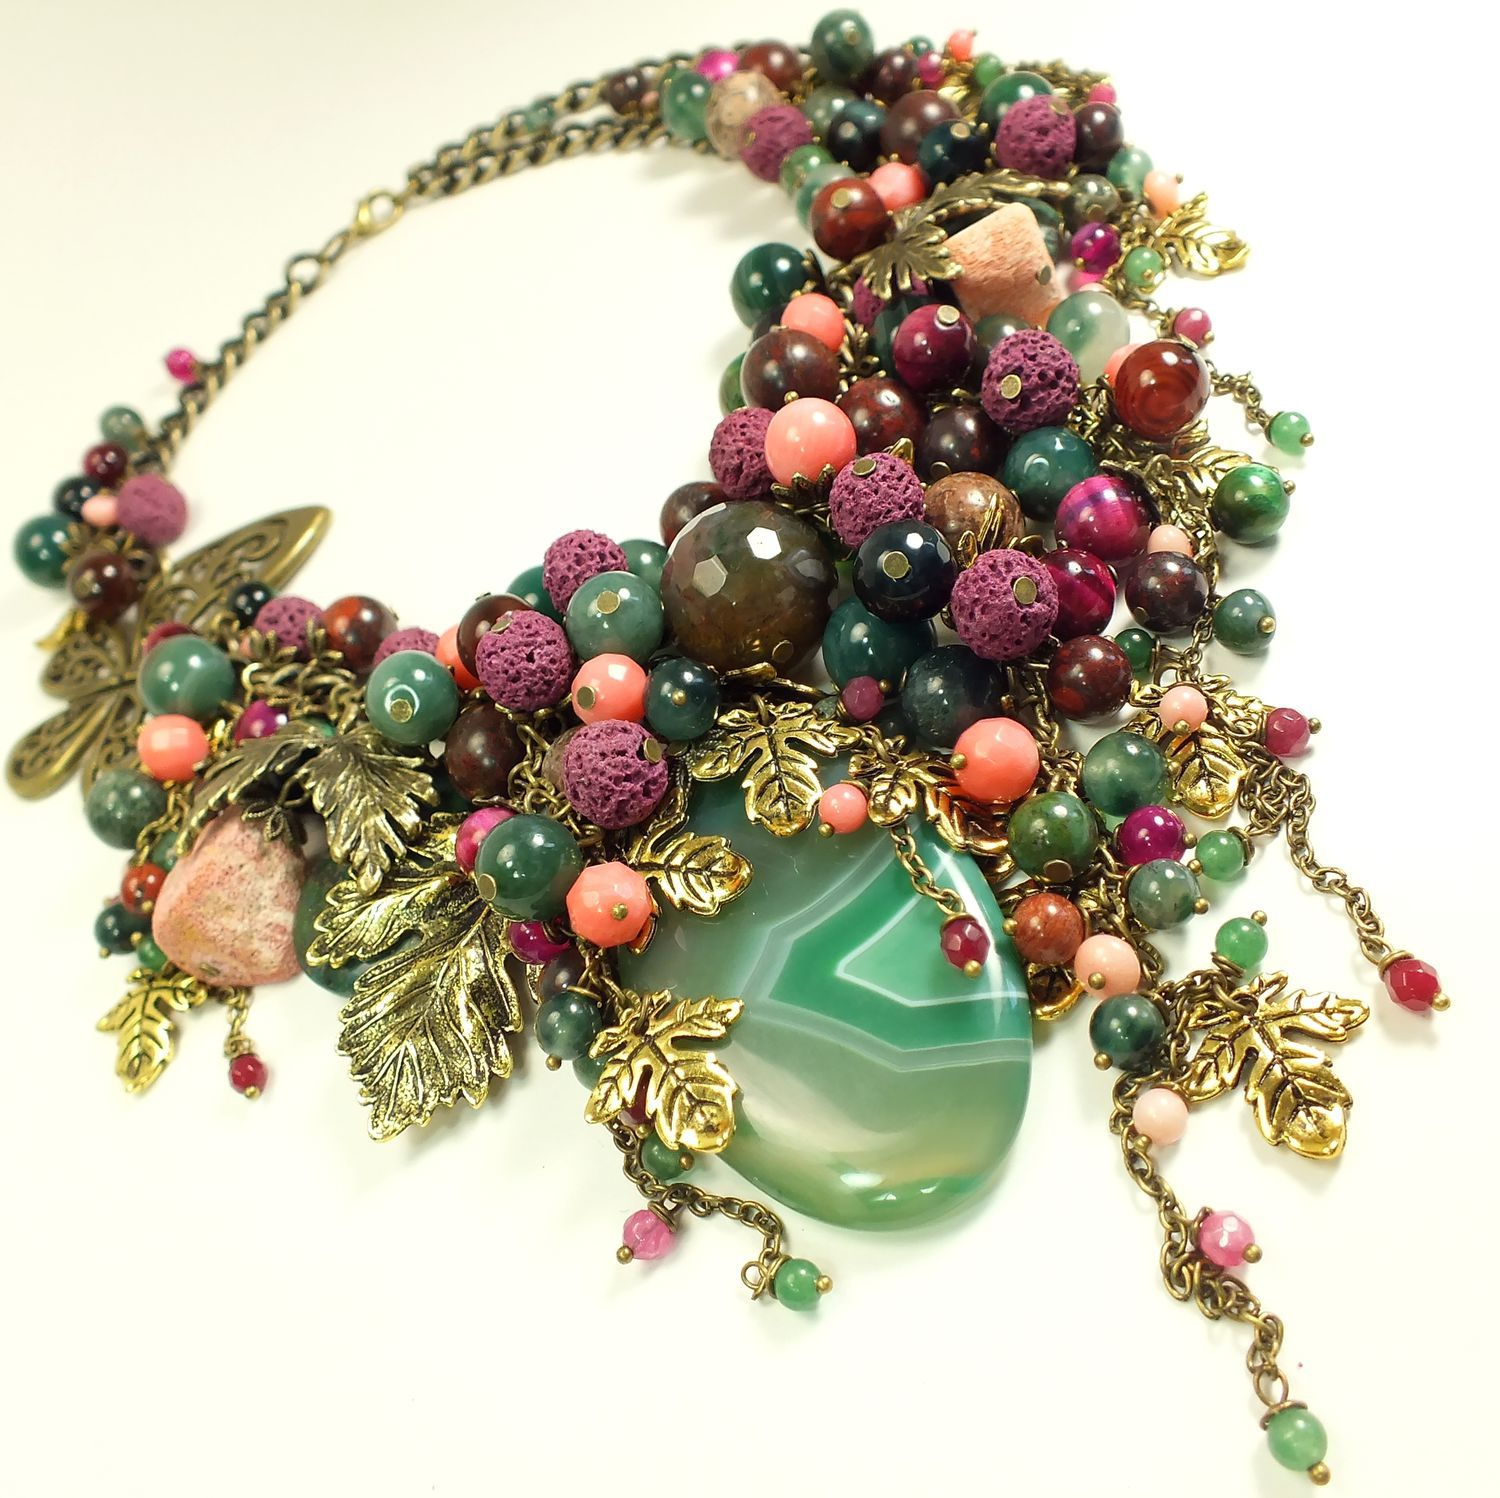 Evening Emerald Bay. necklace made of natural stones, Necklace, St. Petersburg,  Фото №1